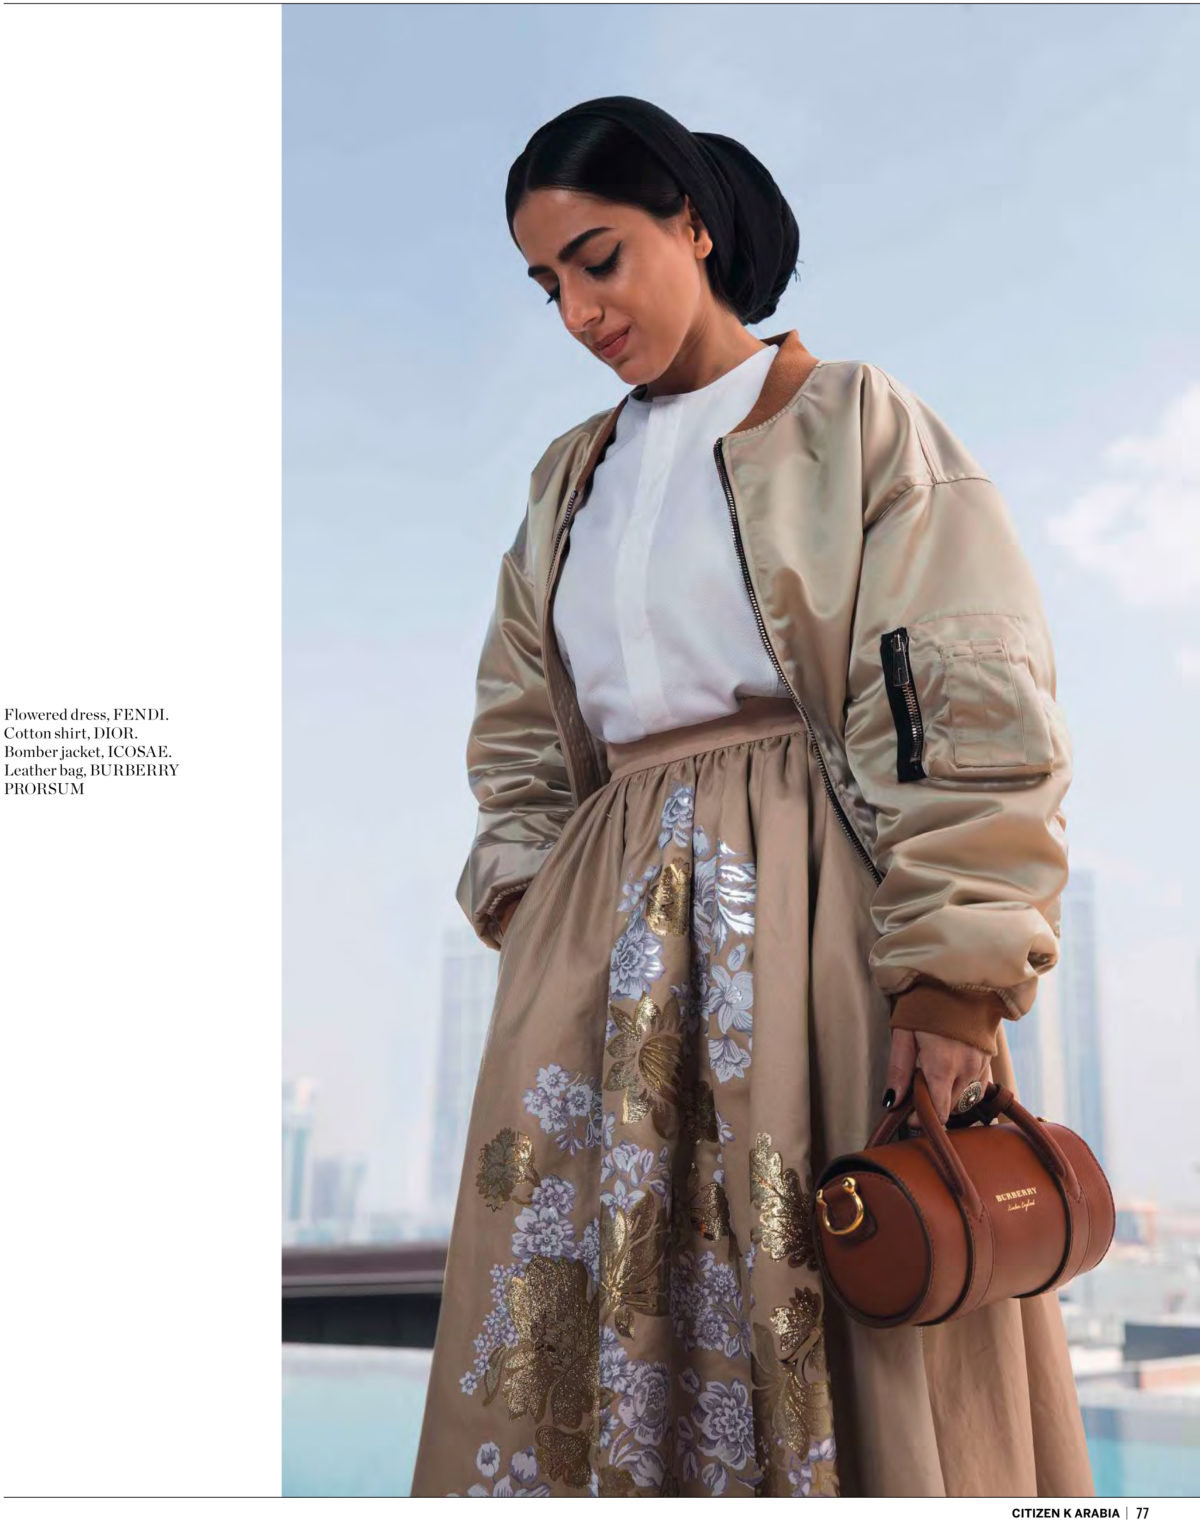 Producer Aya Al Bitar styled by Arthur Mayadoux with Icosae bombers, Dior shirt, Fendi shirt, Burberry bag for Citizen K Arabia